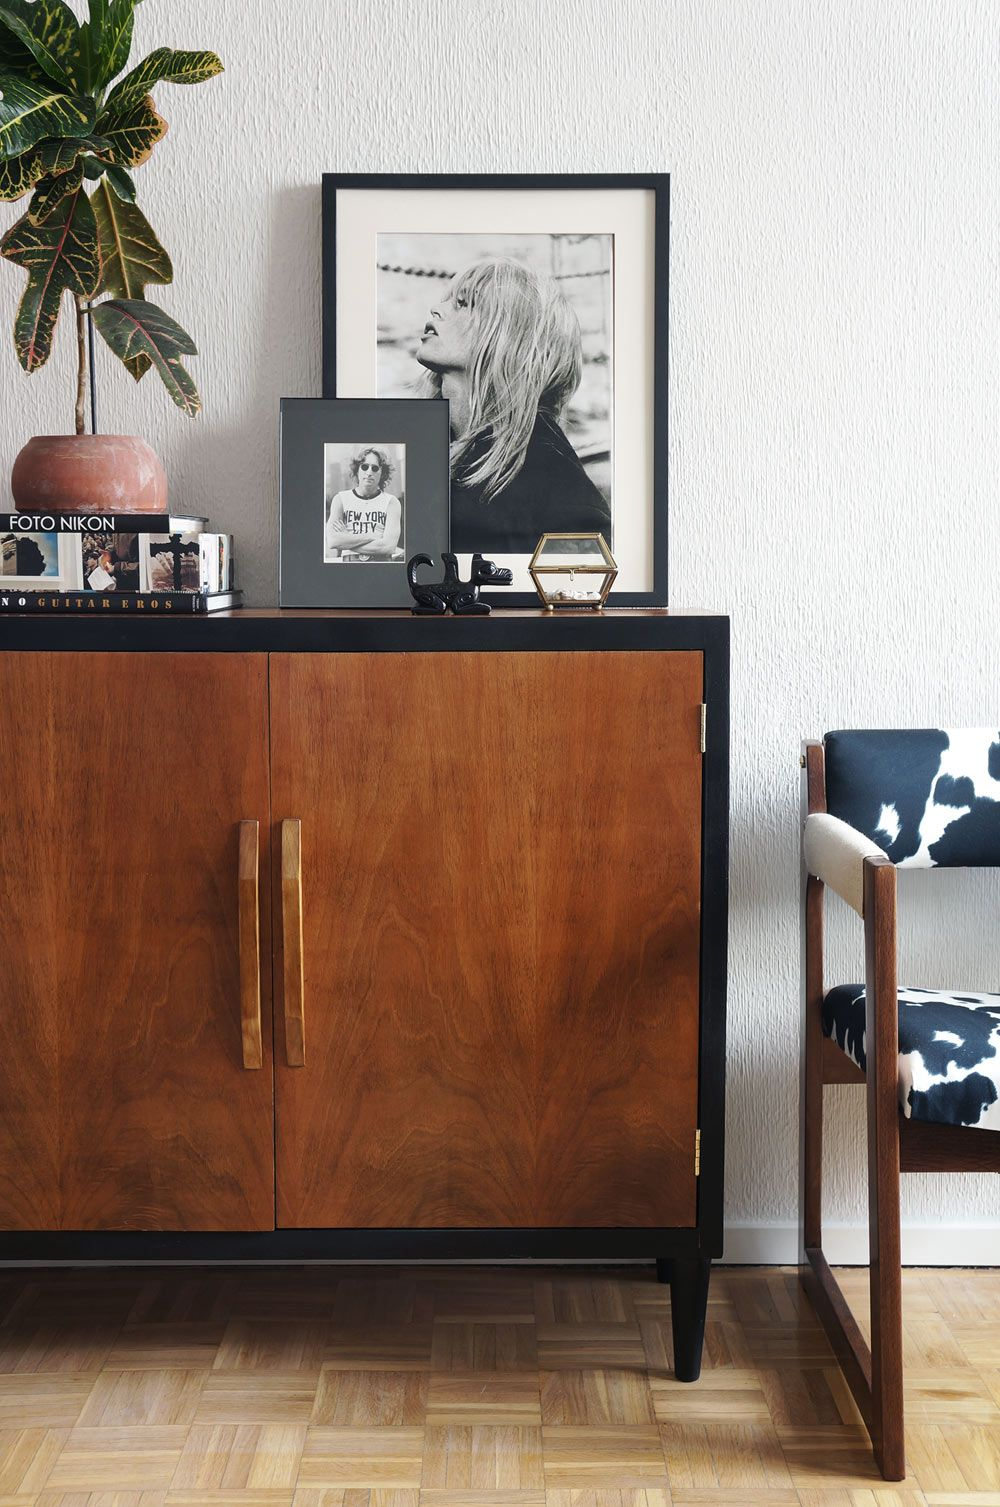 diy modern vintage furniture makeover. How To Transform An Old Sideboard Into A Pretty Mid Century Style Sideboard. This Is What I Call BIG Furniture Makeover Diy Modern Vintage